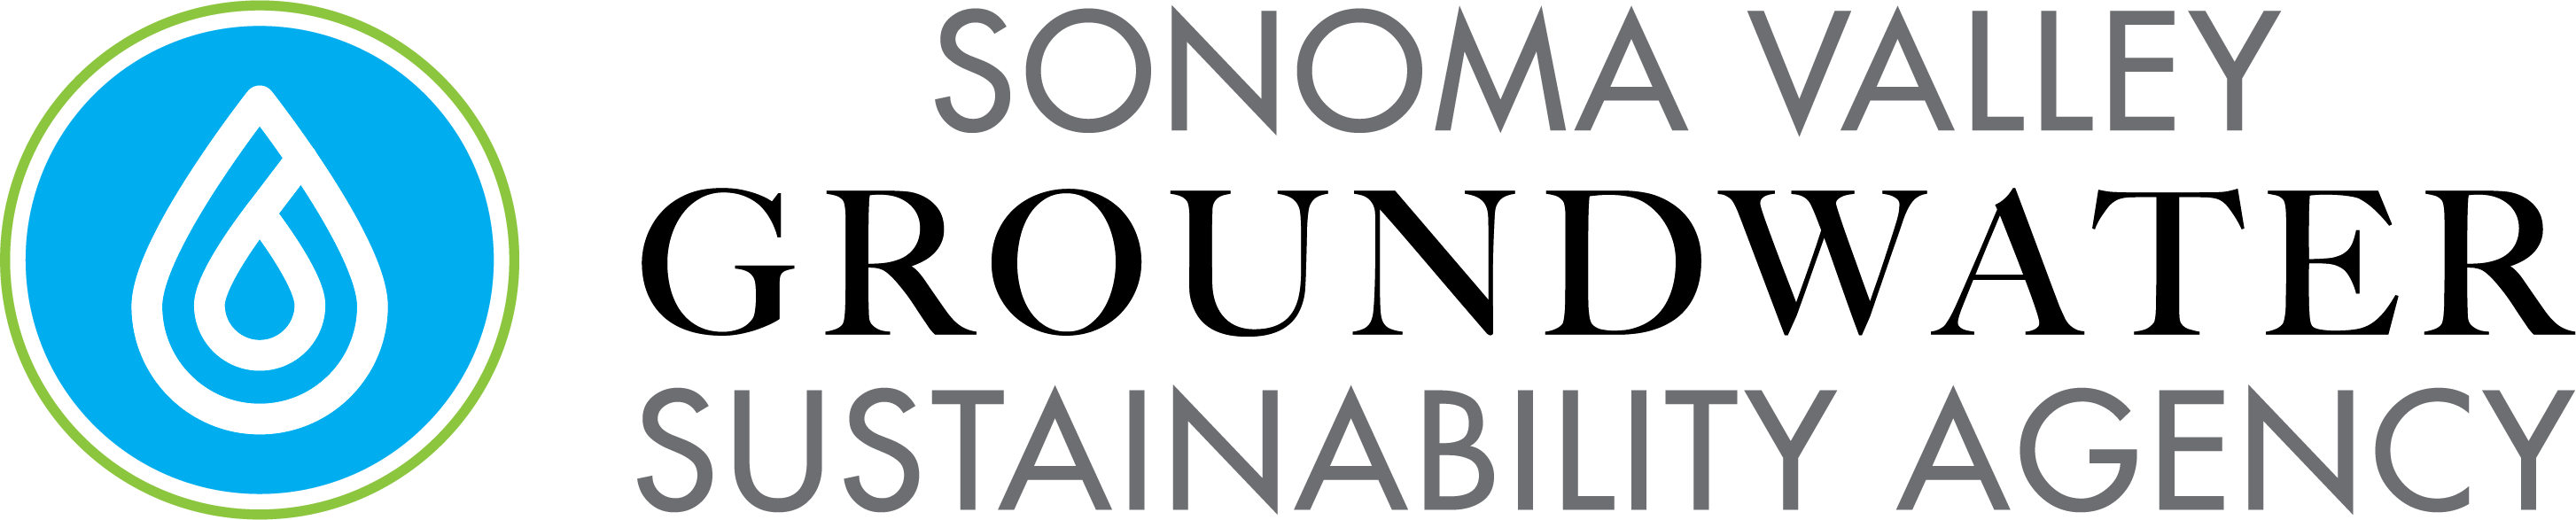 Sonoma Valley Groundwater Sustainability Agency